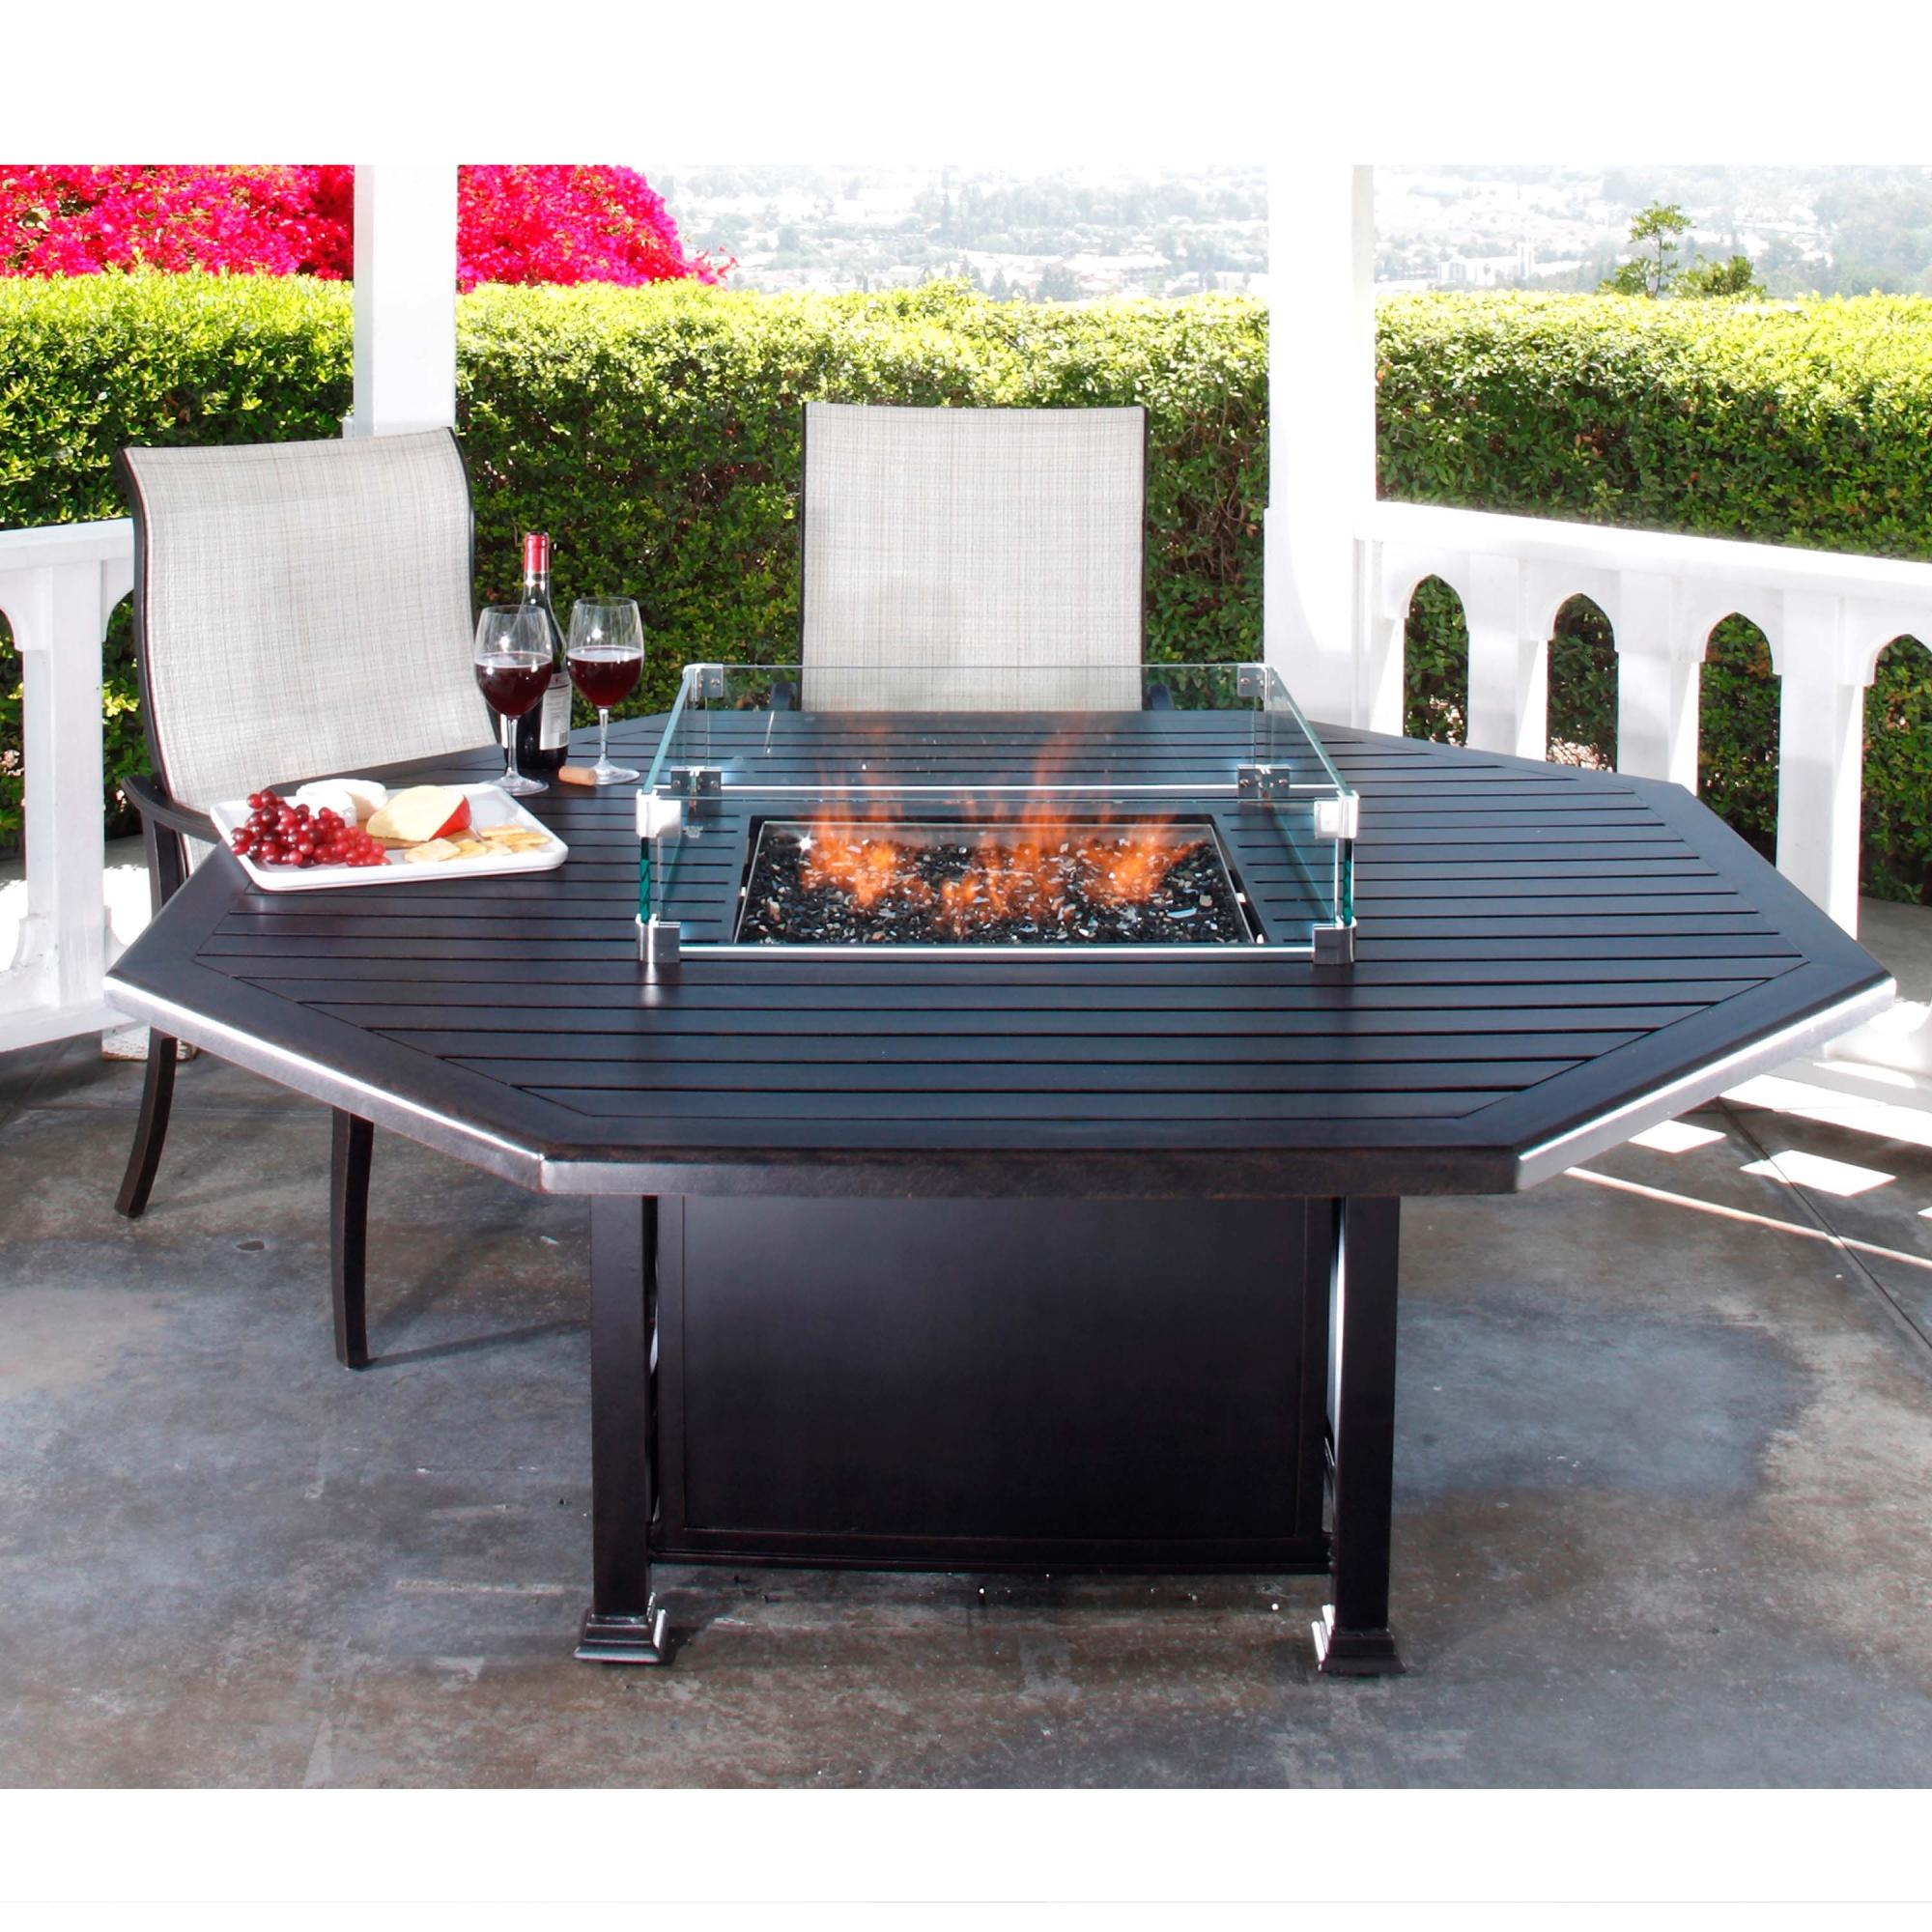 Paso Robles Octagon Dining Fire Table W665 L665